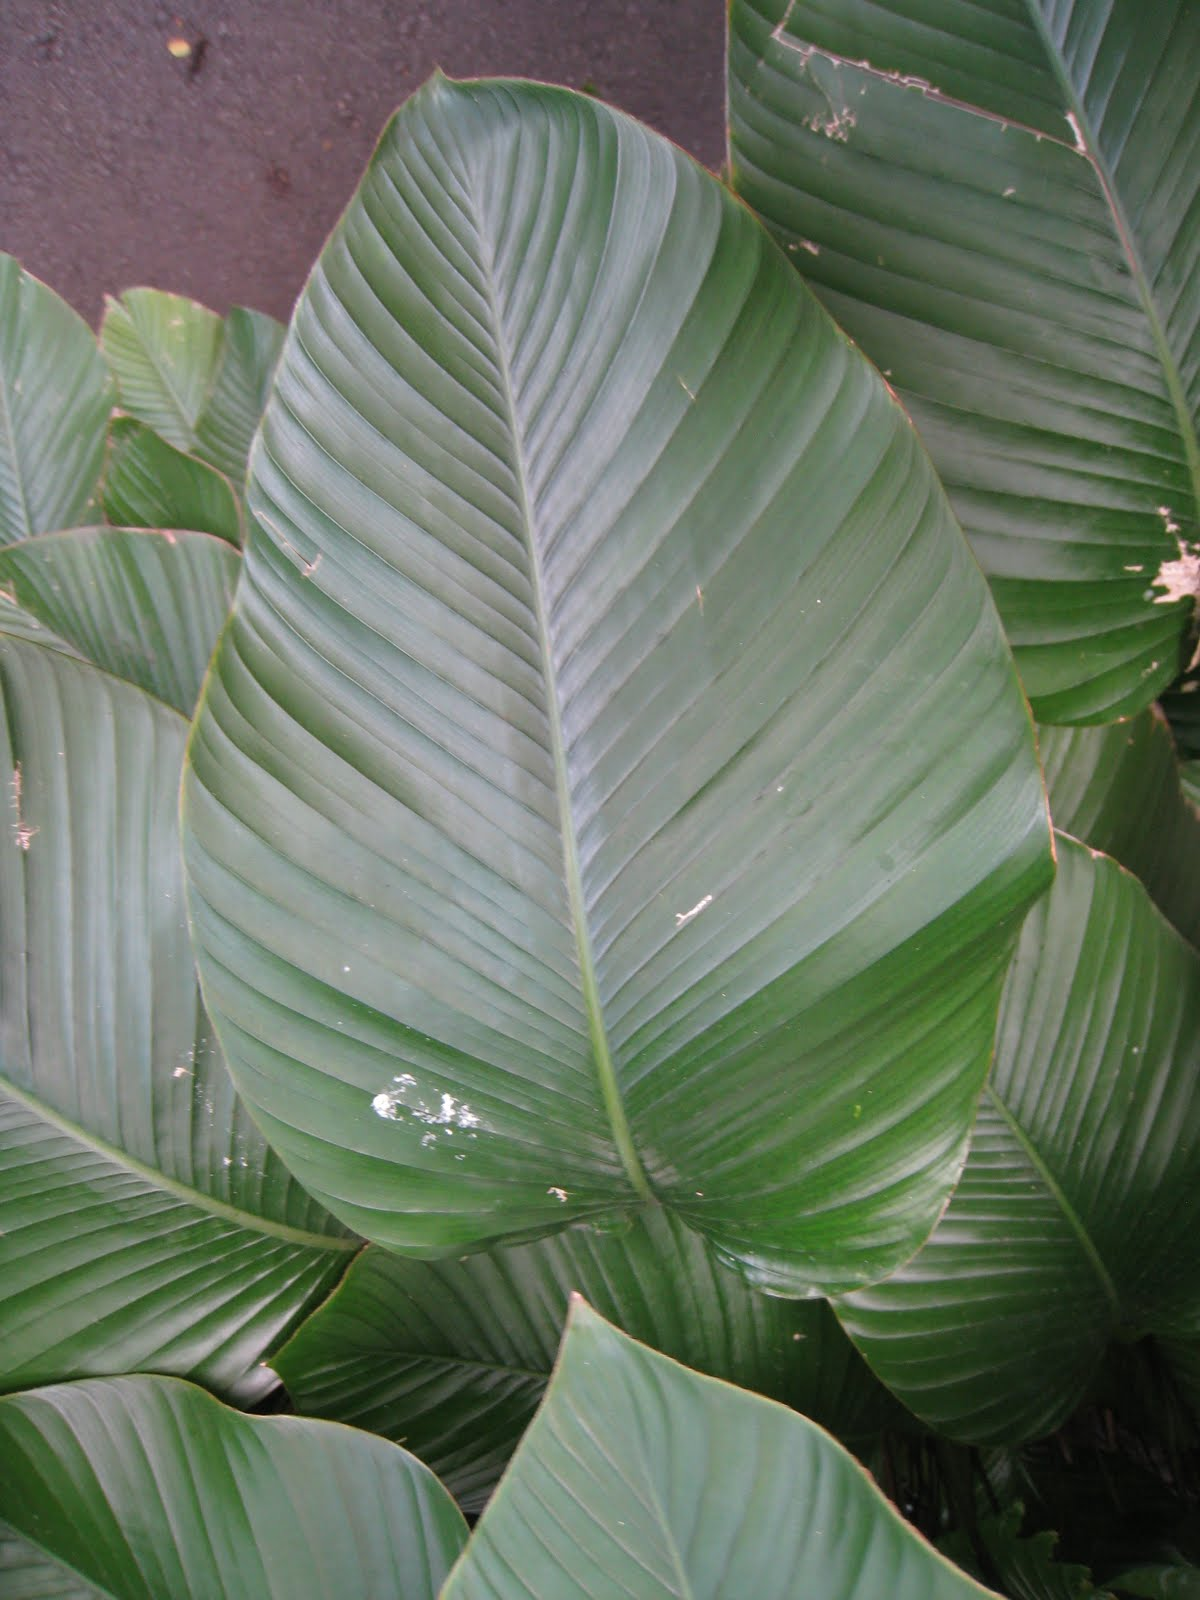 Plants with Parallel Veined Leaves http://domandk.com/palmately-veined-leaves